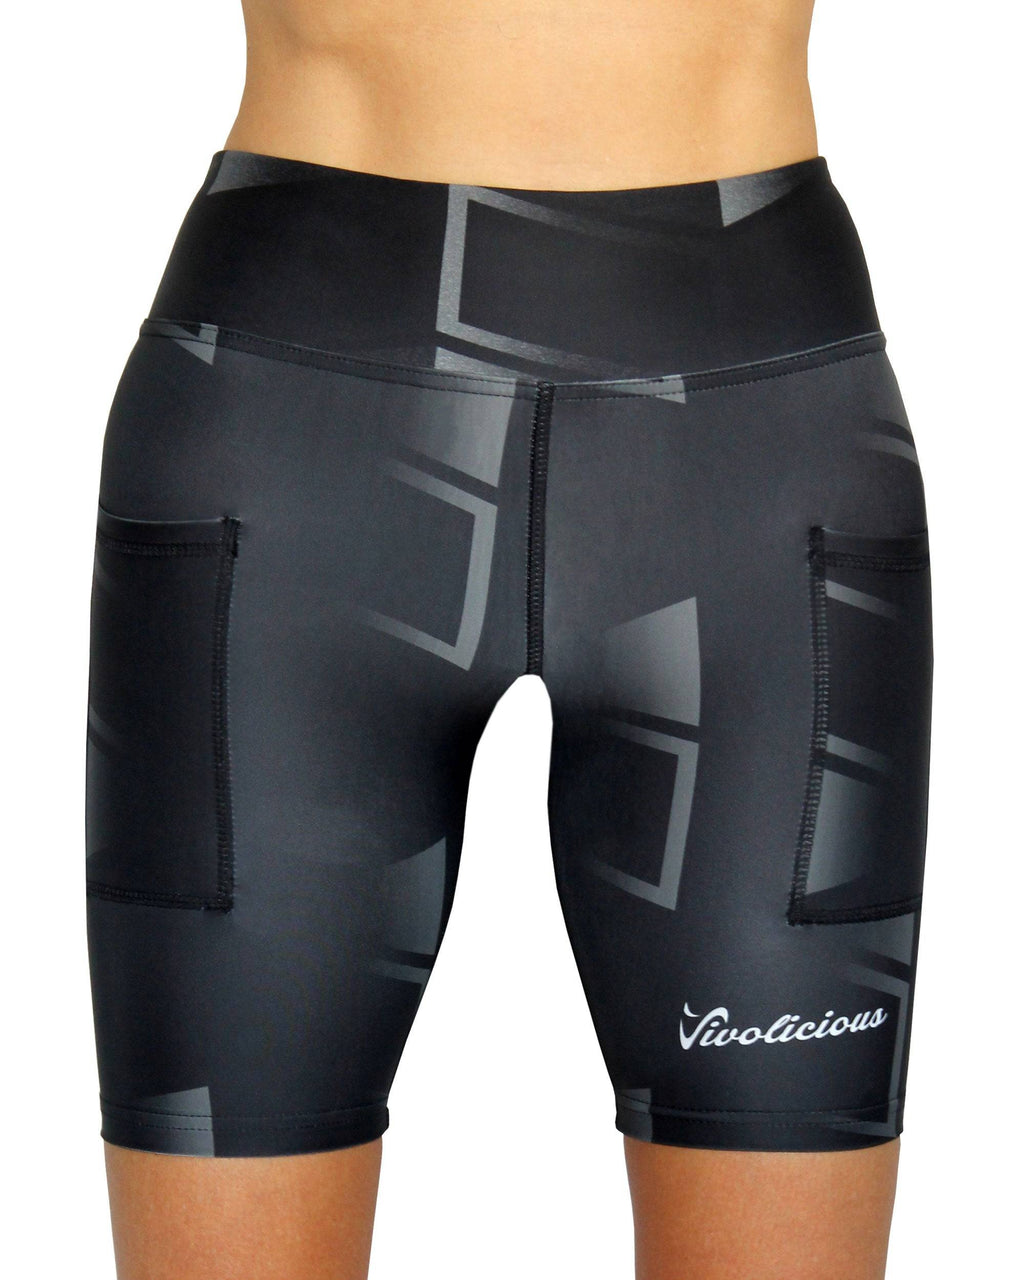 CLUB BLACK Tech Shorts VIVOLICIOUS Activewear